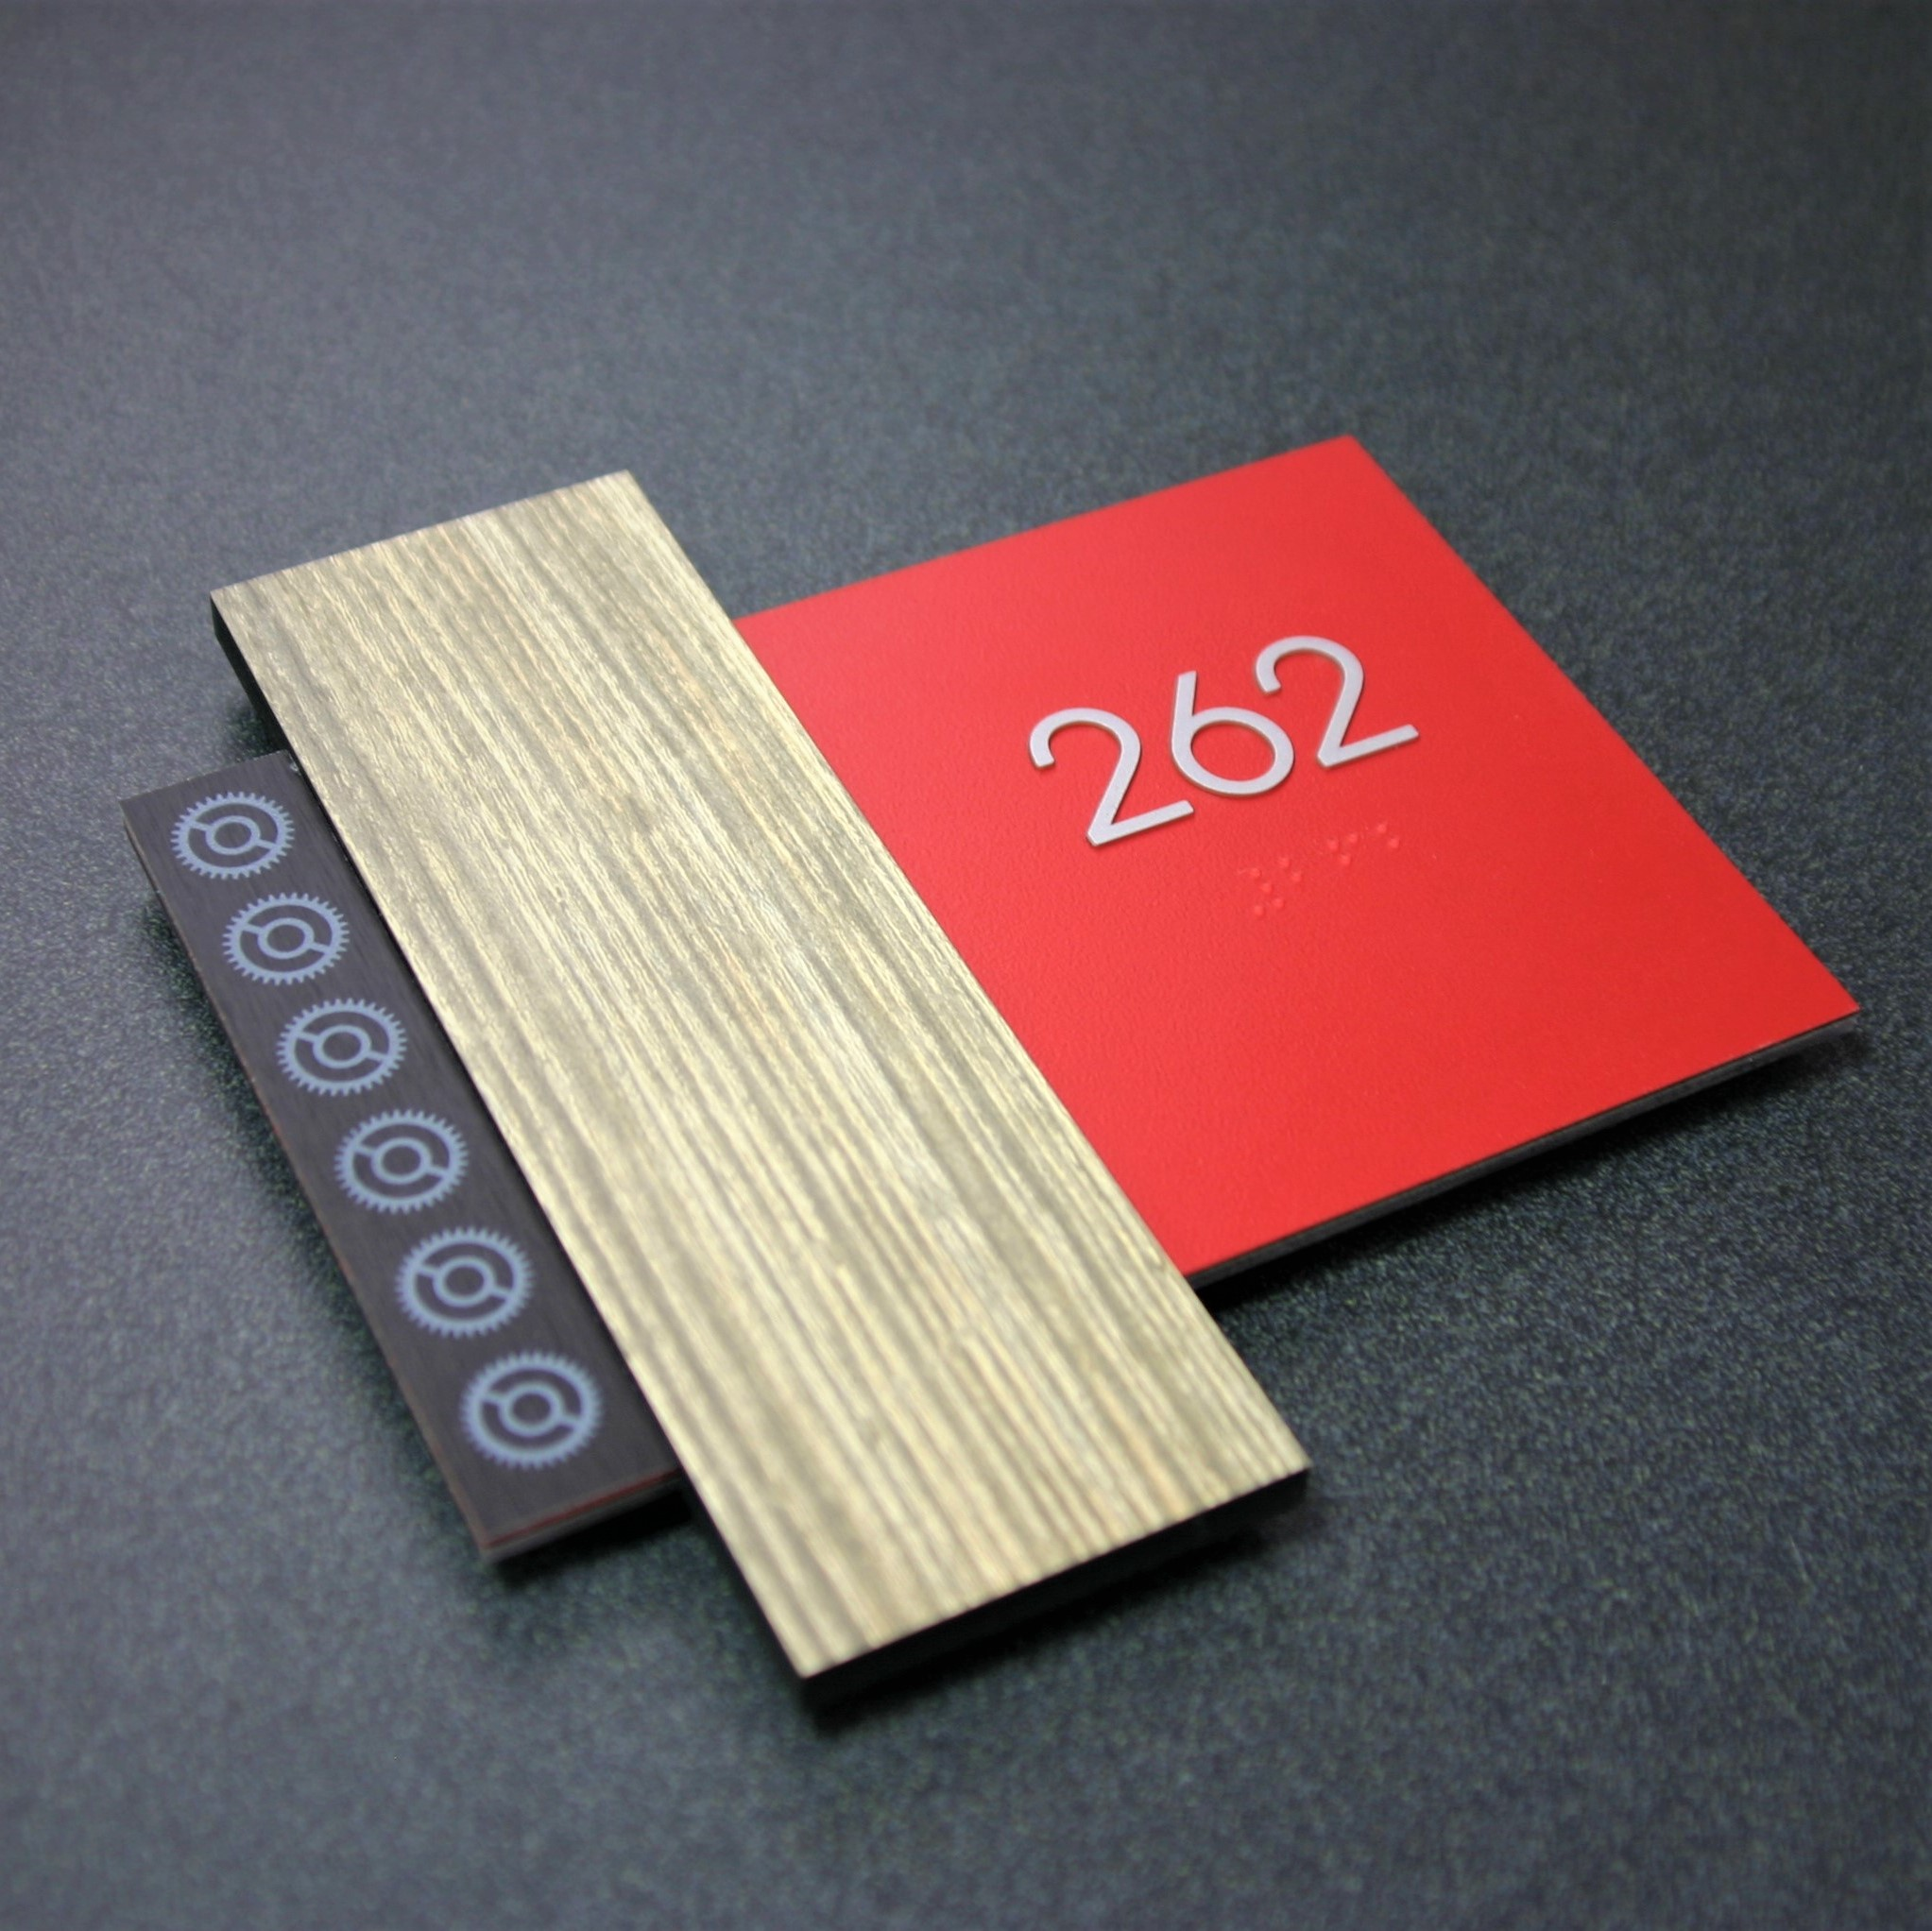 """Accent bar is Wilson Art laminate applied to 1/4"""" acrylic material. Faceplate is 1/8"""" thick photopolymer material with Wilson Art laminate, screen ink tipped text and digitally printed graphics."""